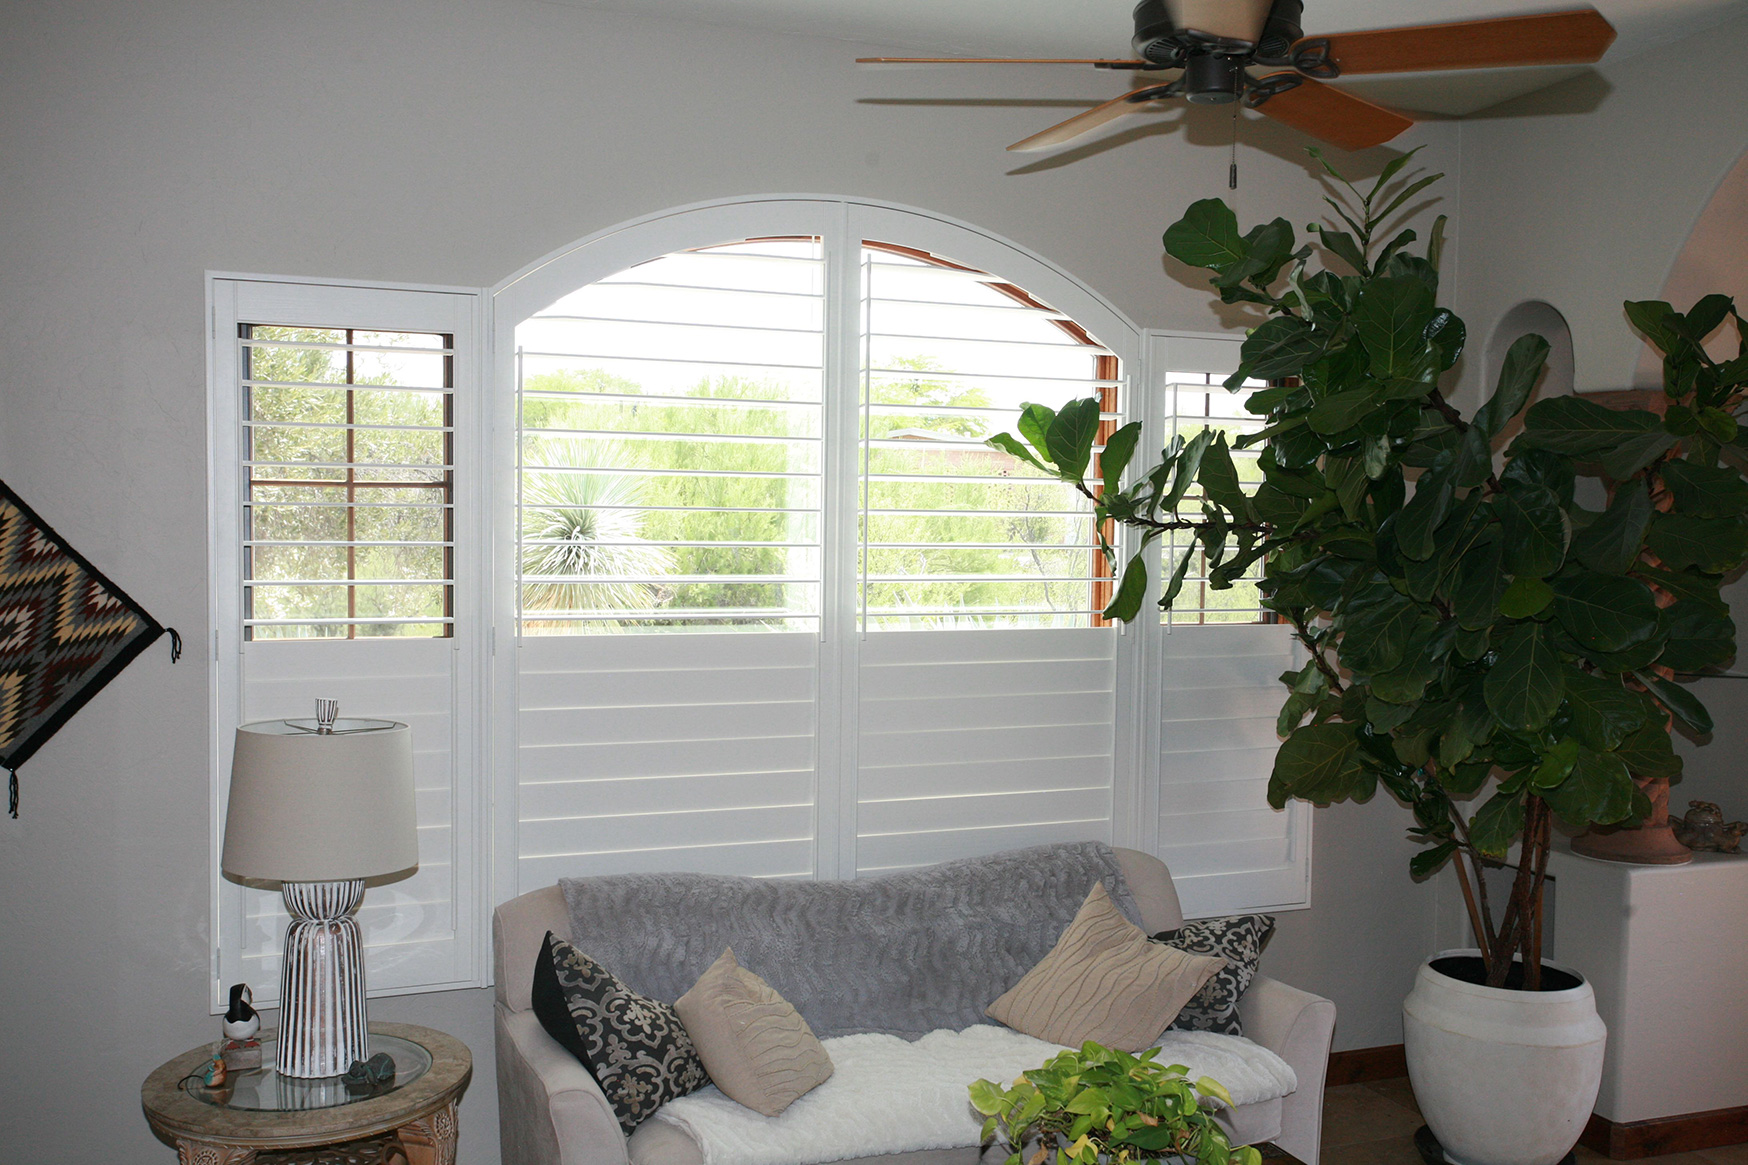 We created fully louvered window coverings that followed the unique shape of the windows in this house.